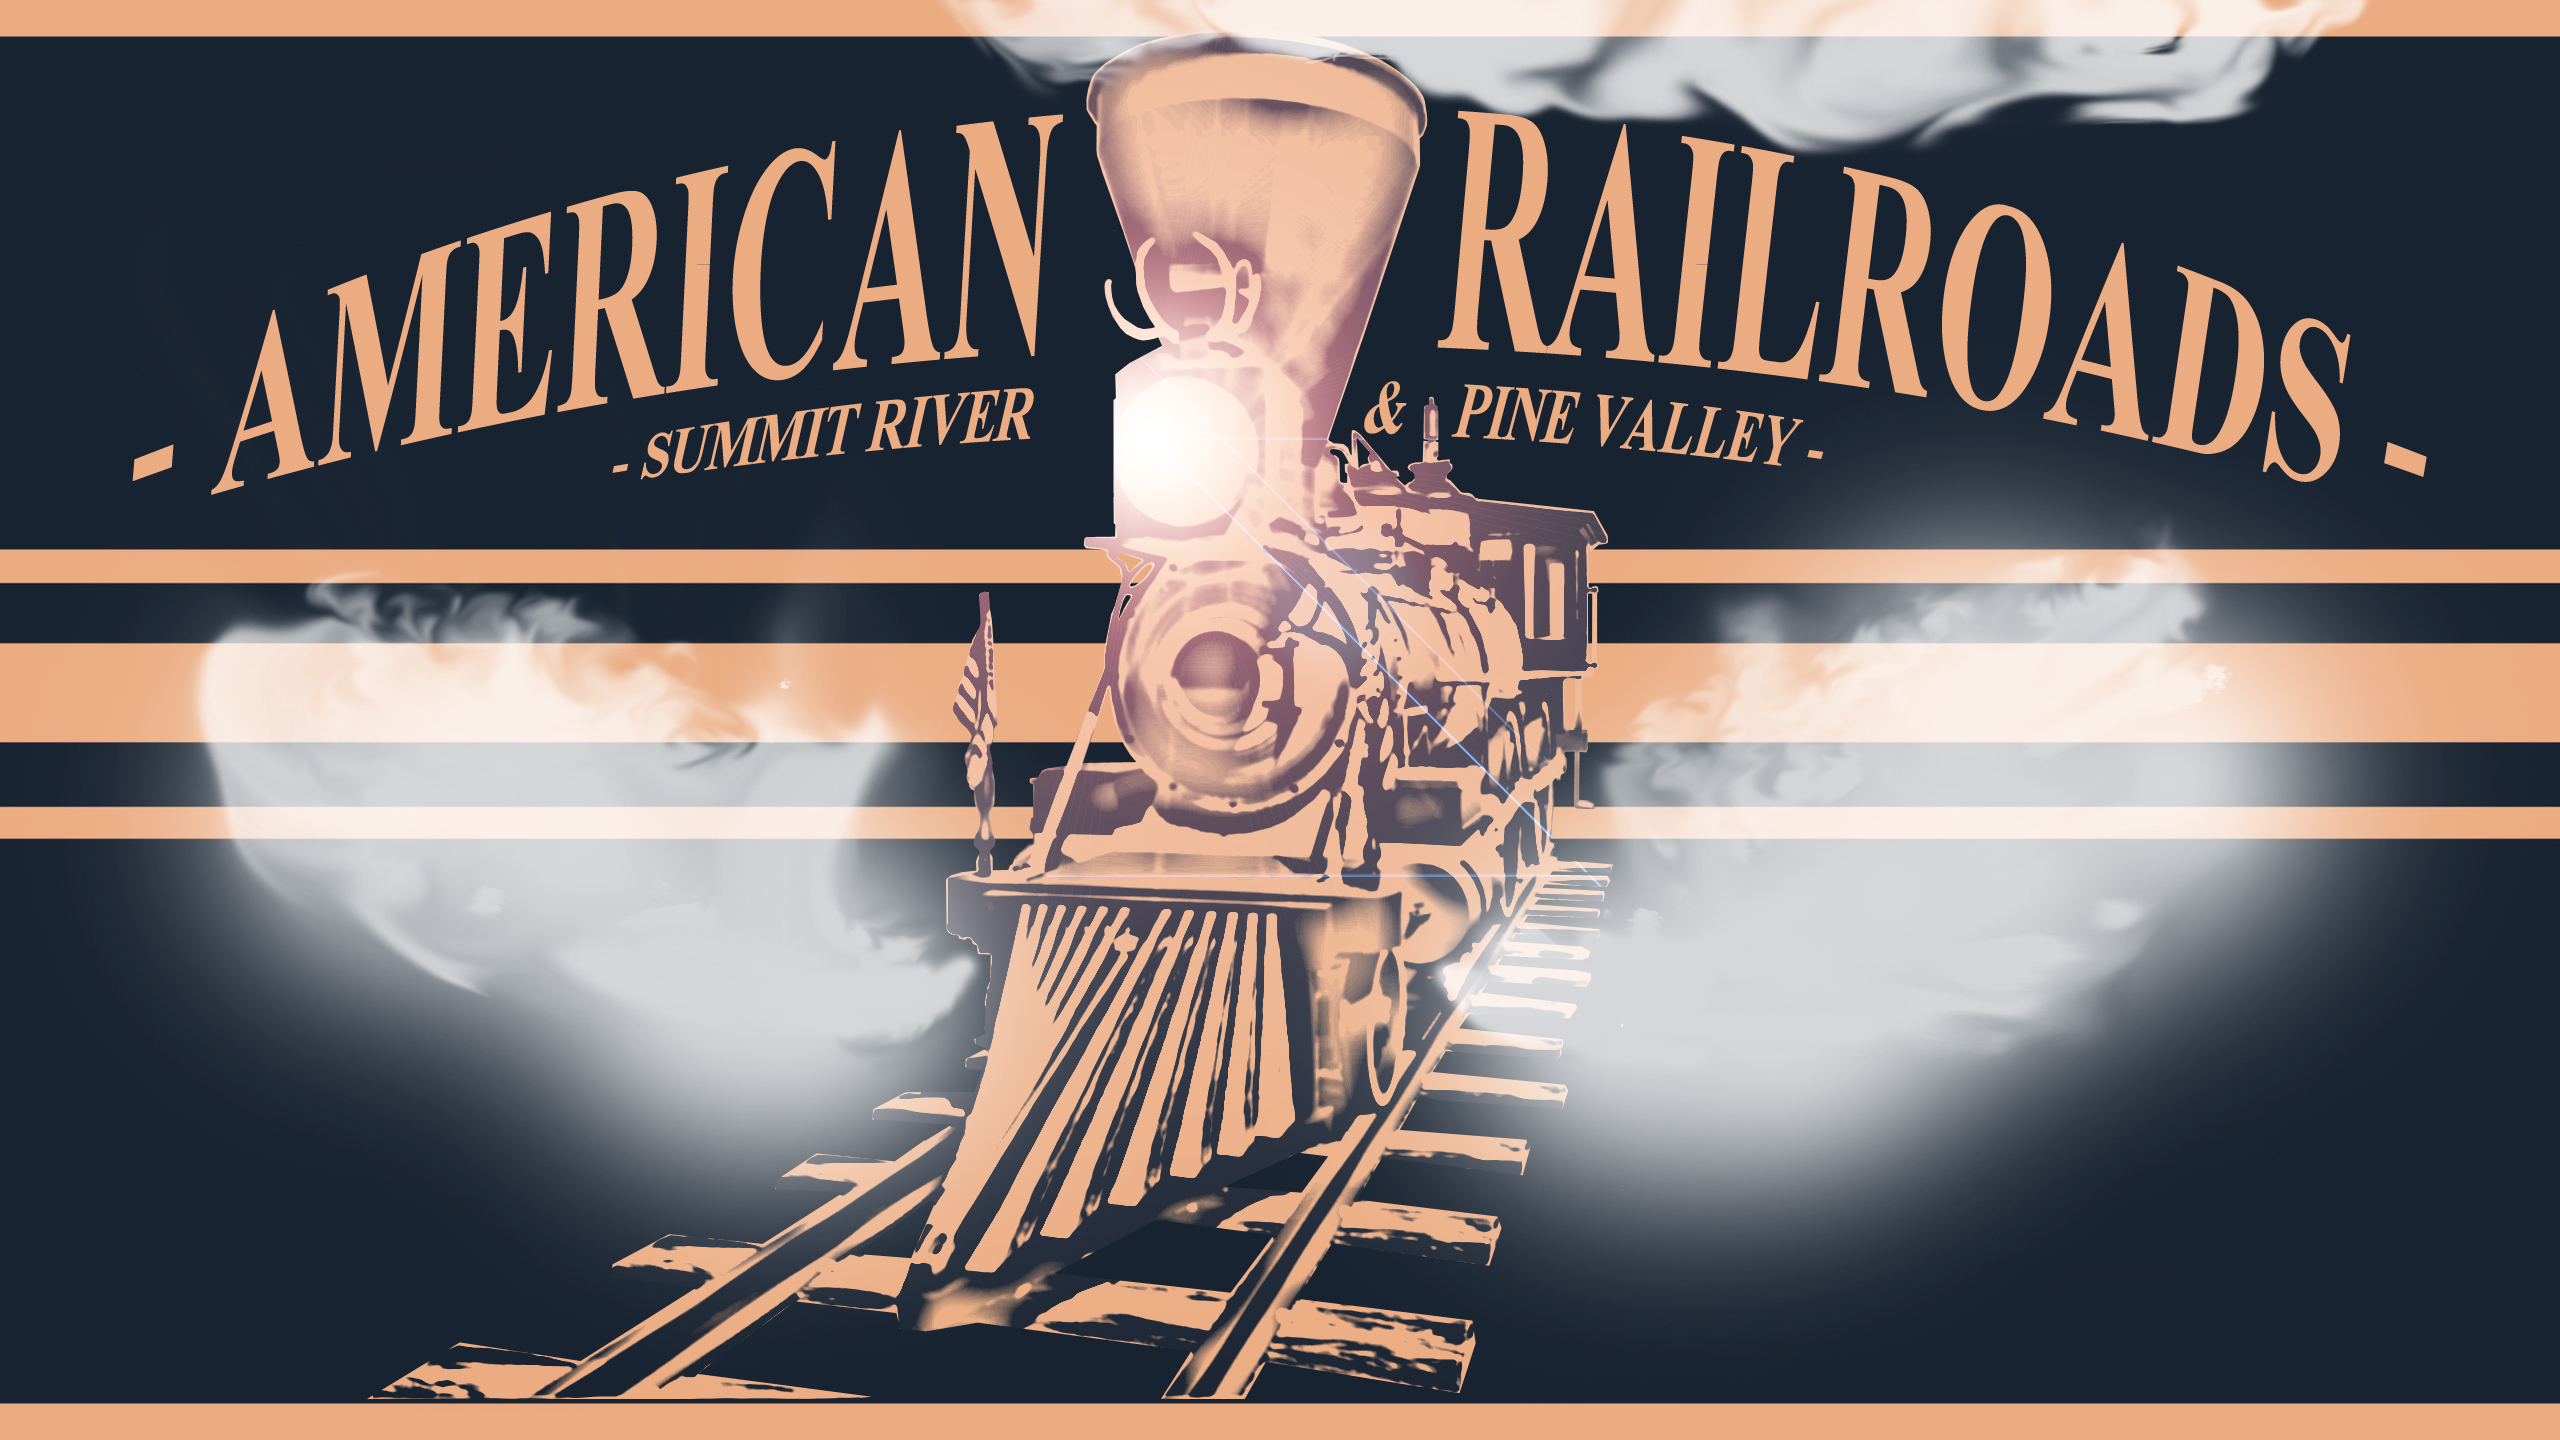 American Railroads - Summit River and Pine Valley